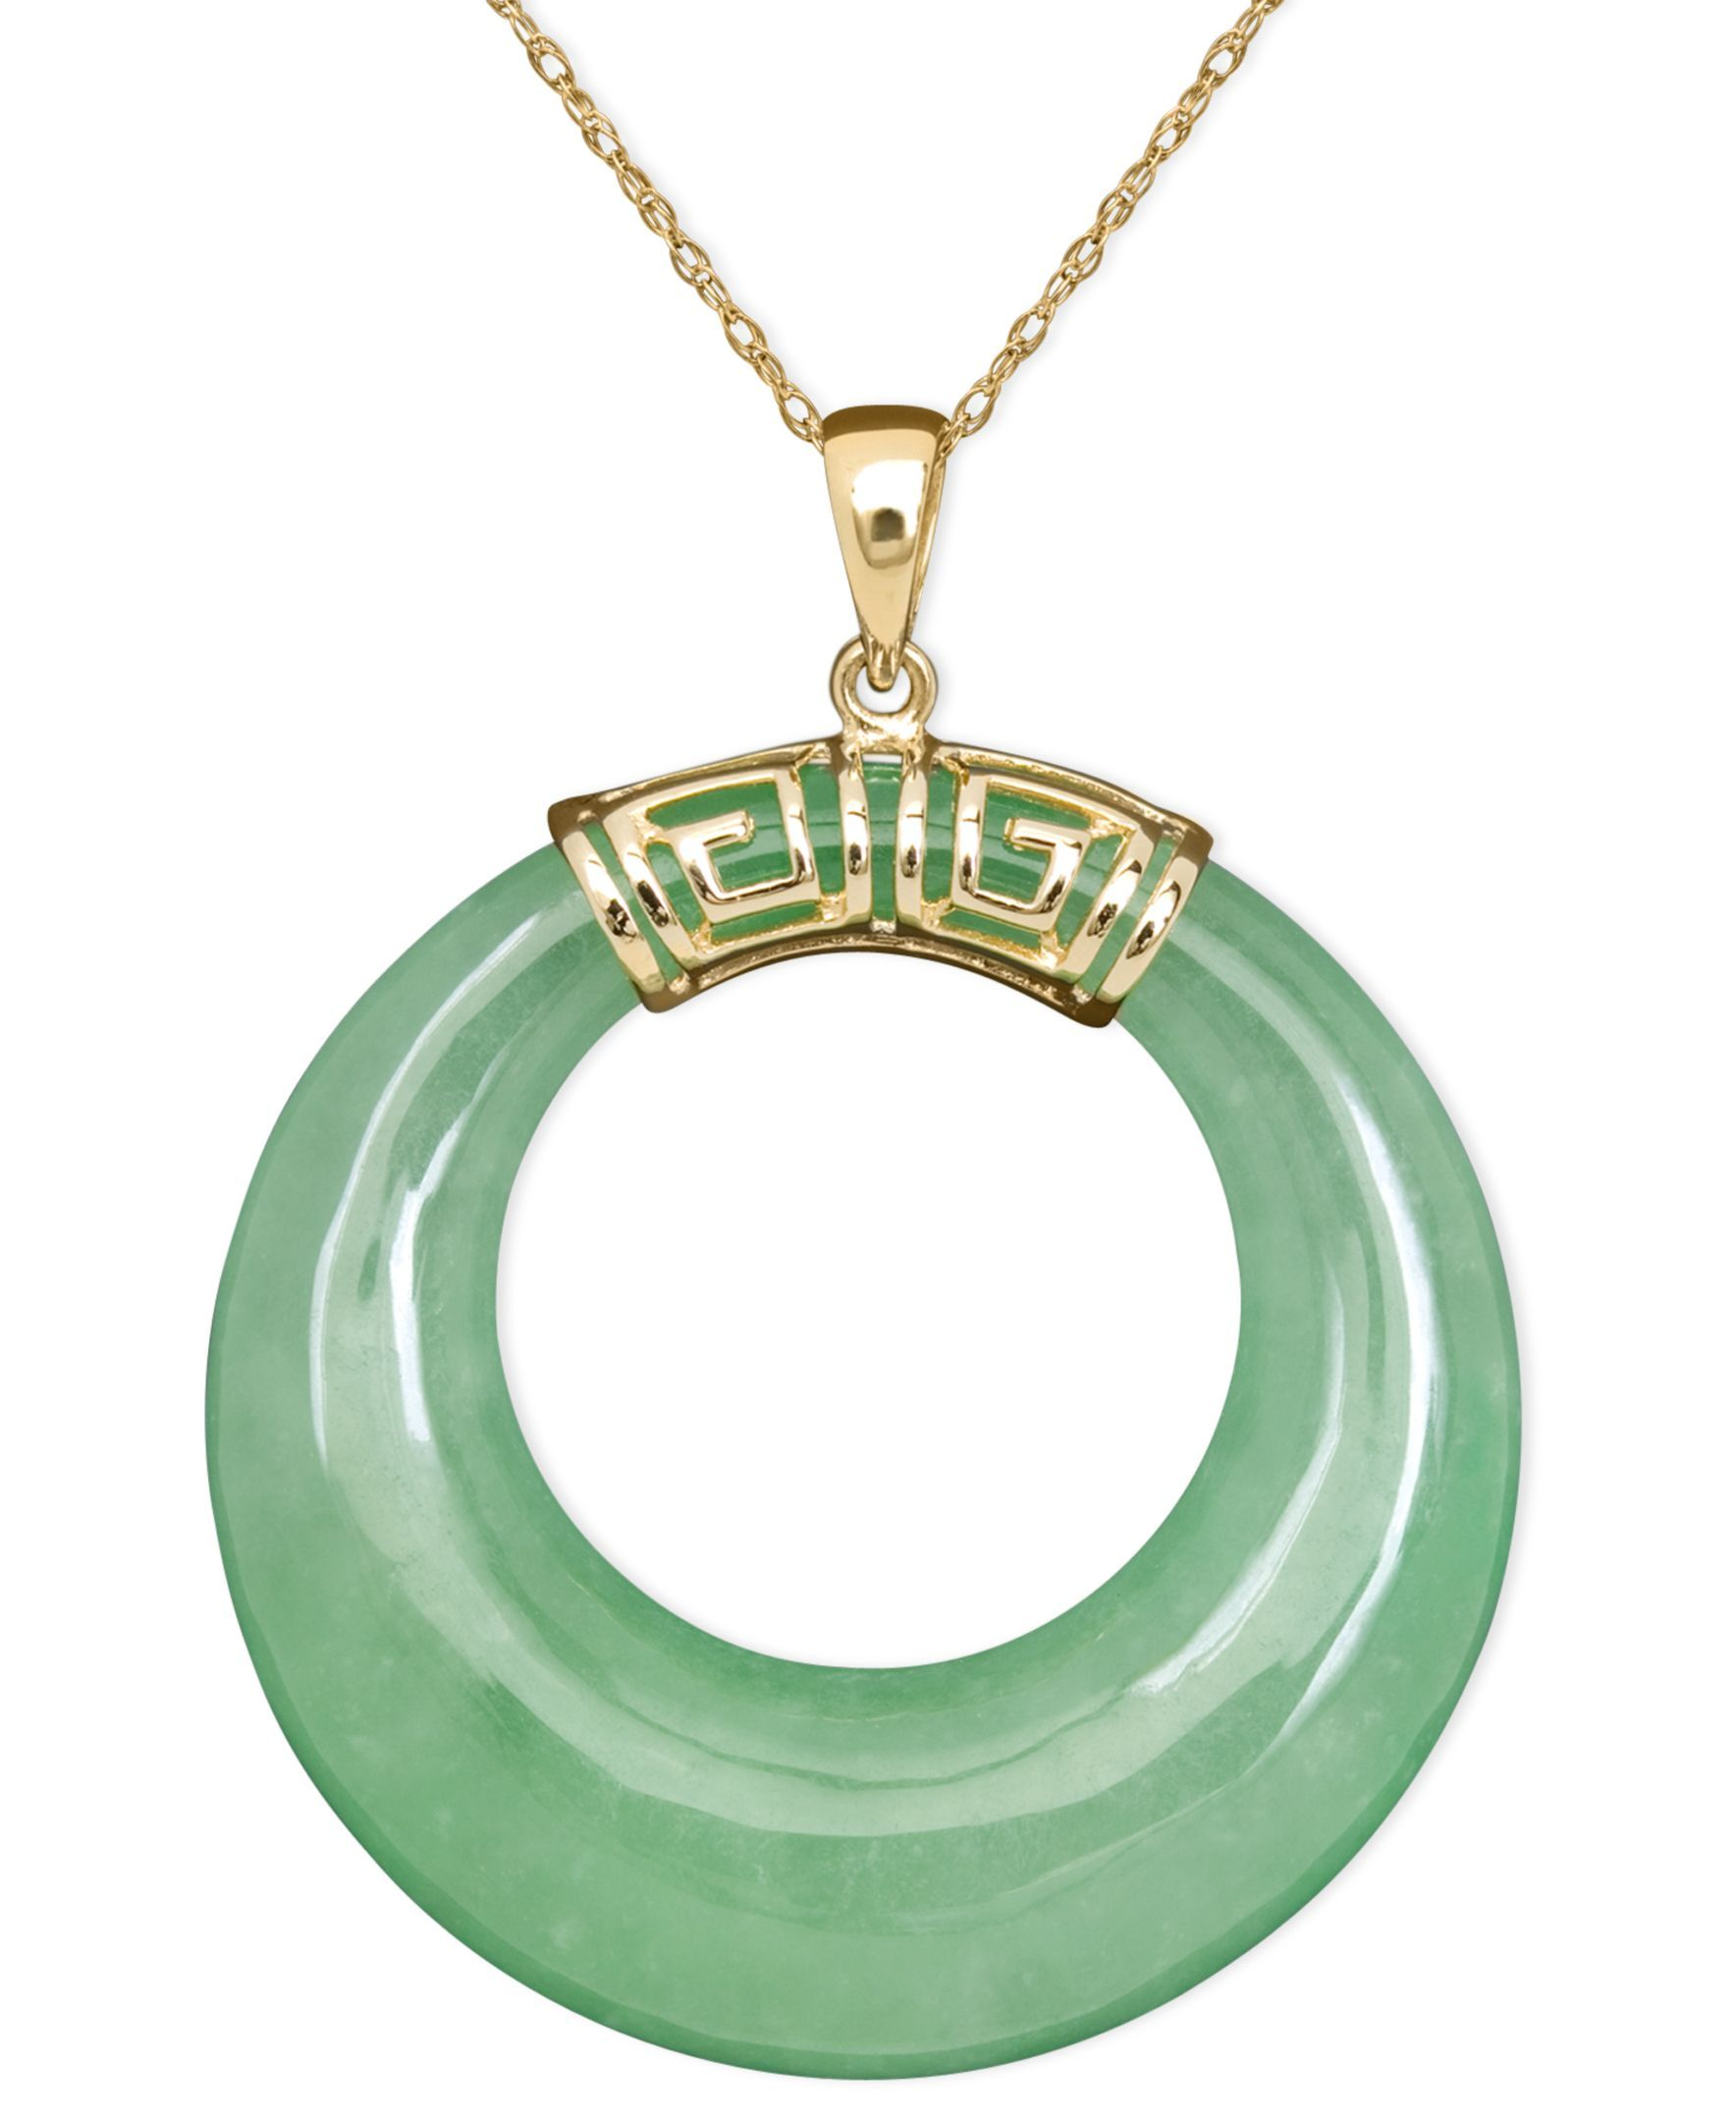 10k gold necklace jade circle pendant products pinterest gold 10k gold necklace jade circle pendant mozeypictures Image collections